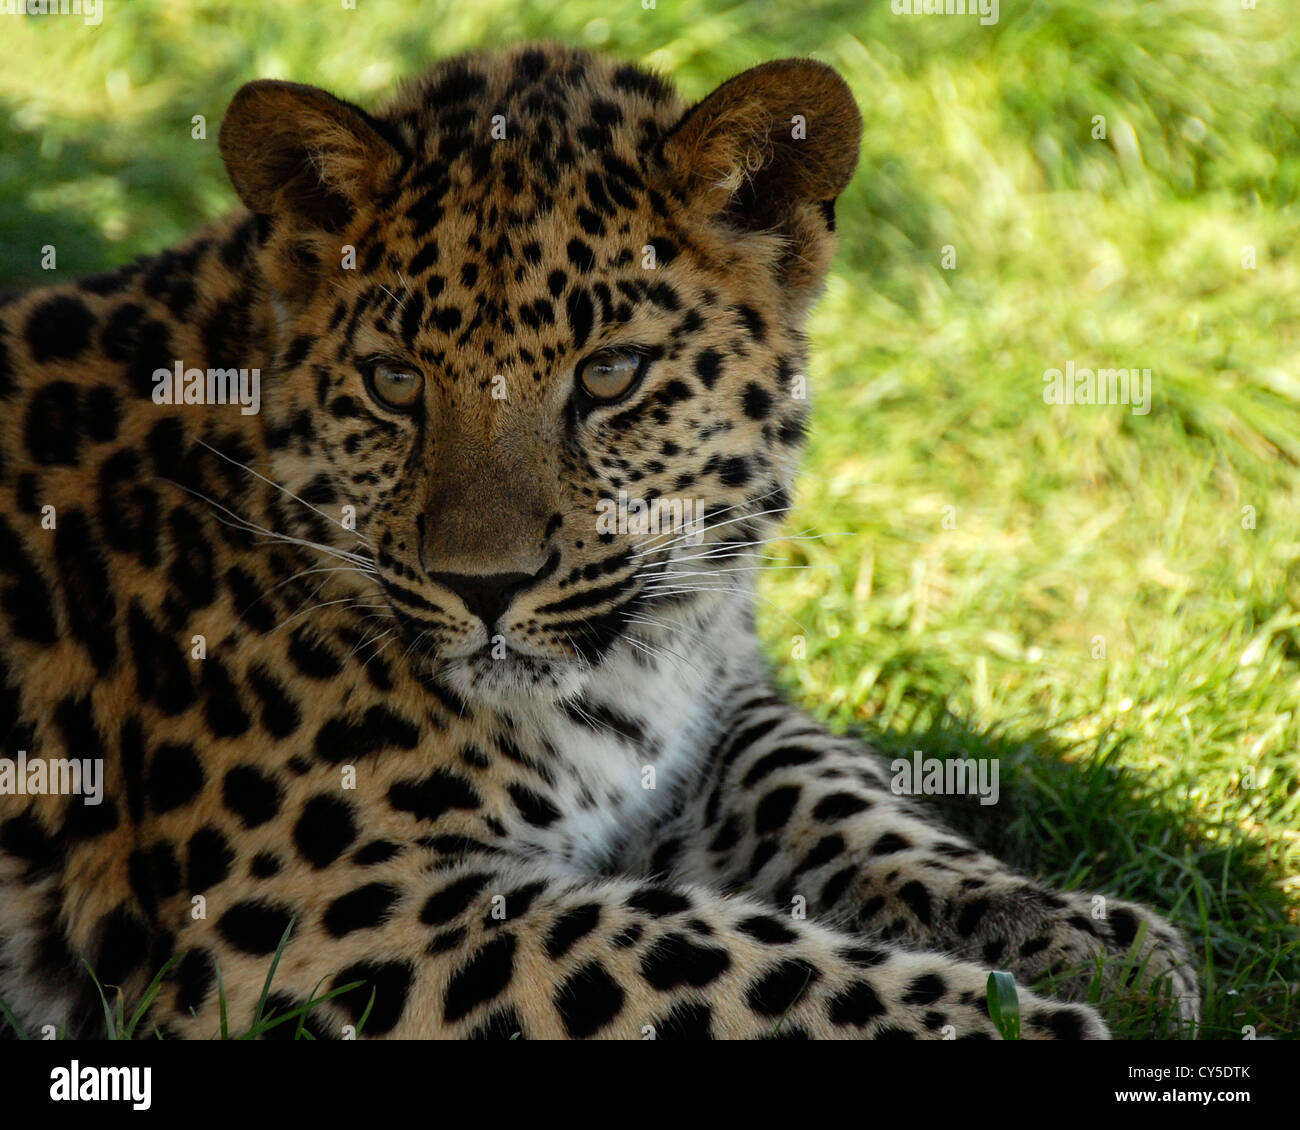 Close up of young Amur Leopard - Stock Image